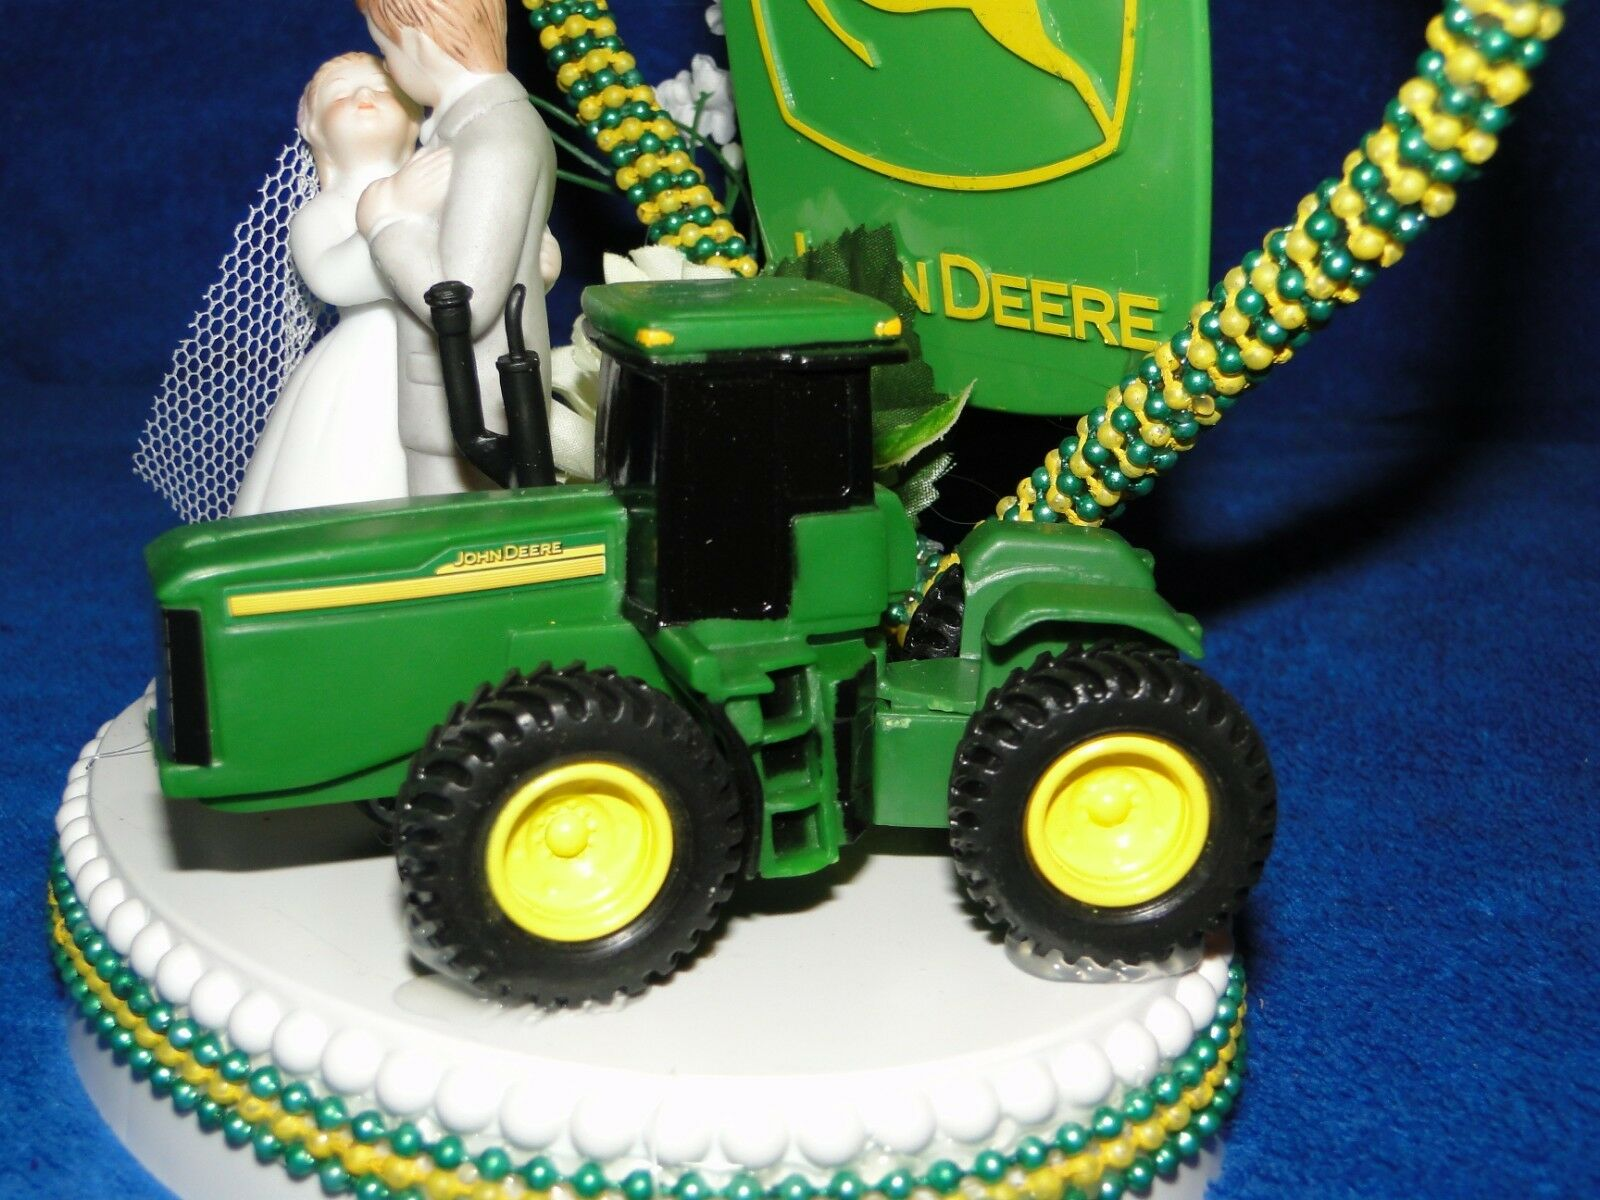 New John Deere Tractor Wedding Couple Cake Topper With 3 Bride Groom